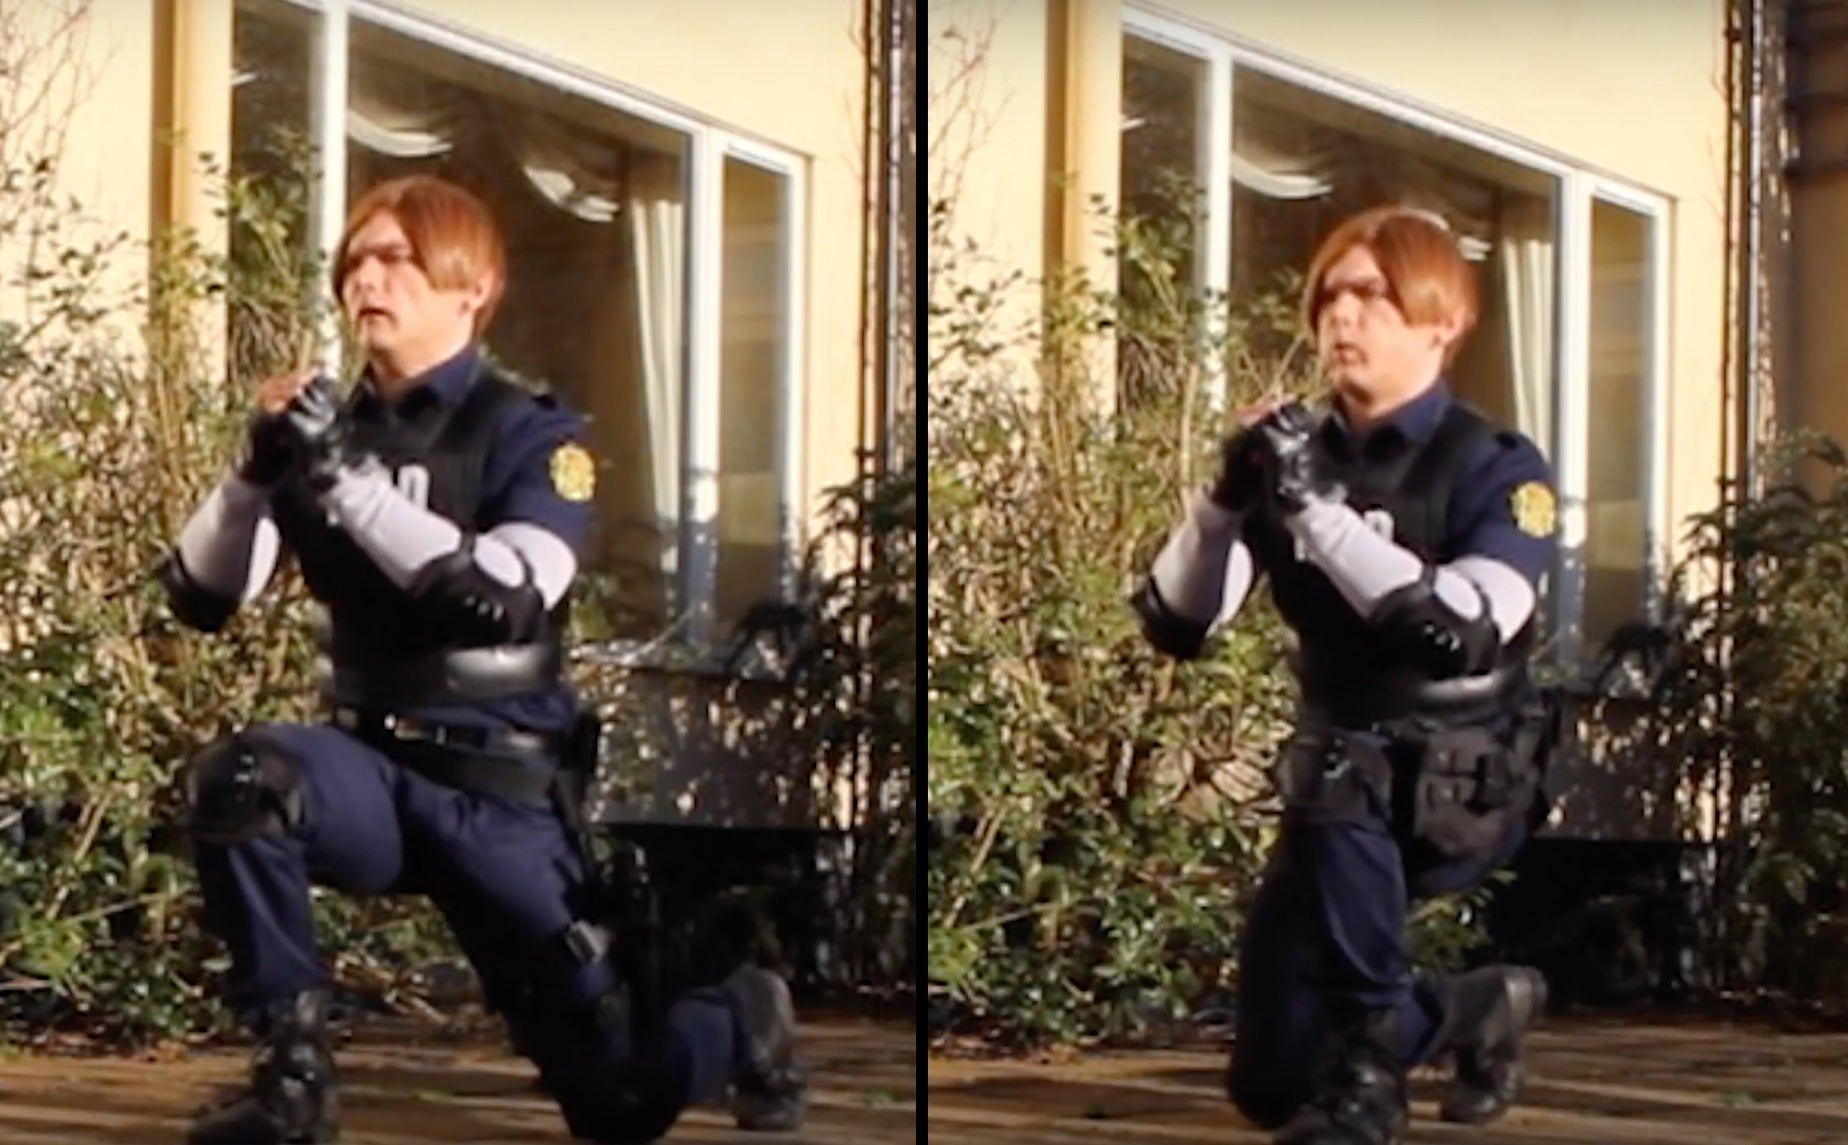 Leon S. Kennedy Resident Evil 2 Remake cosplay teaching the jumping lunge for a raccoon city fitness workout